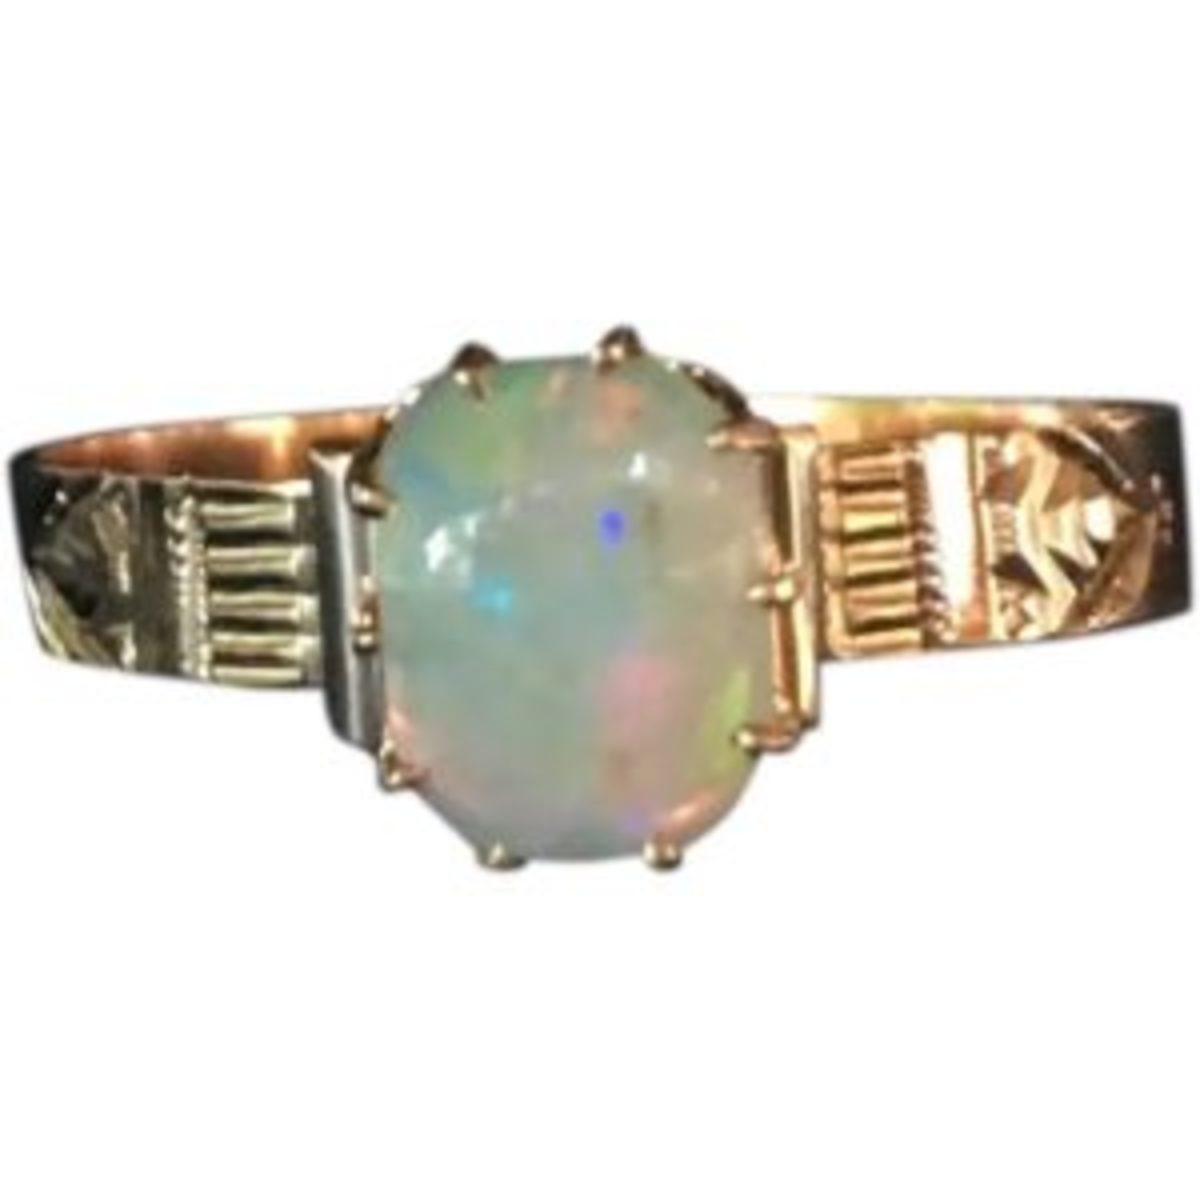 Victorian 14 karat rose gold opal ring size 10. The cushion cut rectangular Opal cabochon is 1.00 ct. $540. Courtesy of Ruby Lane